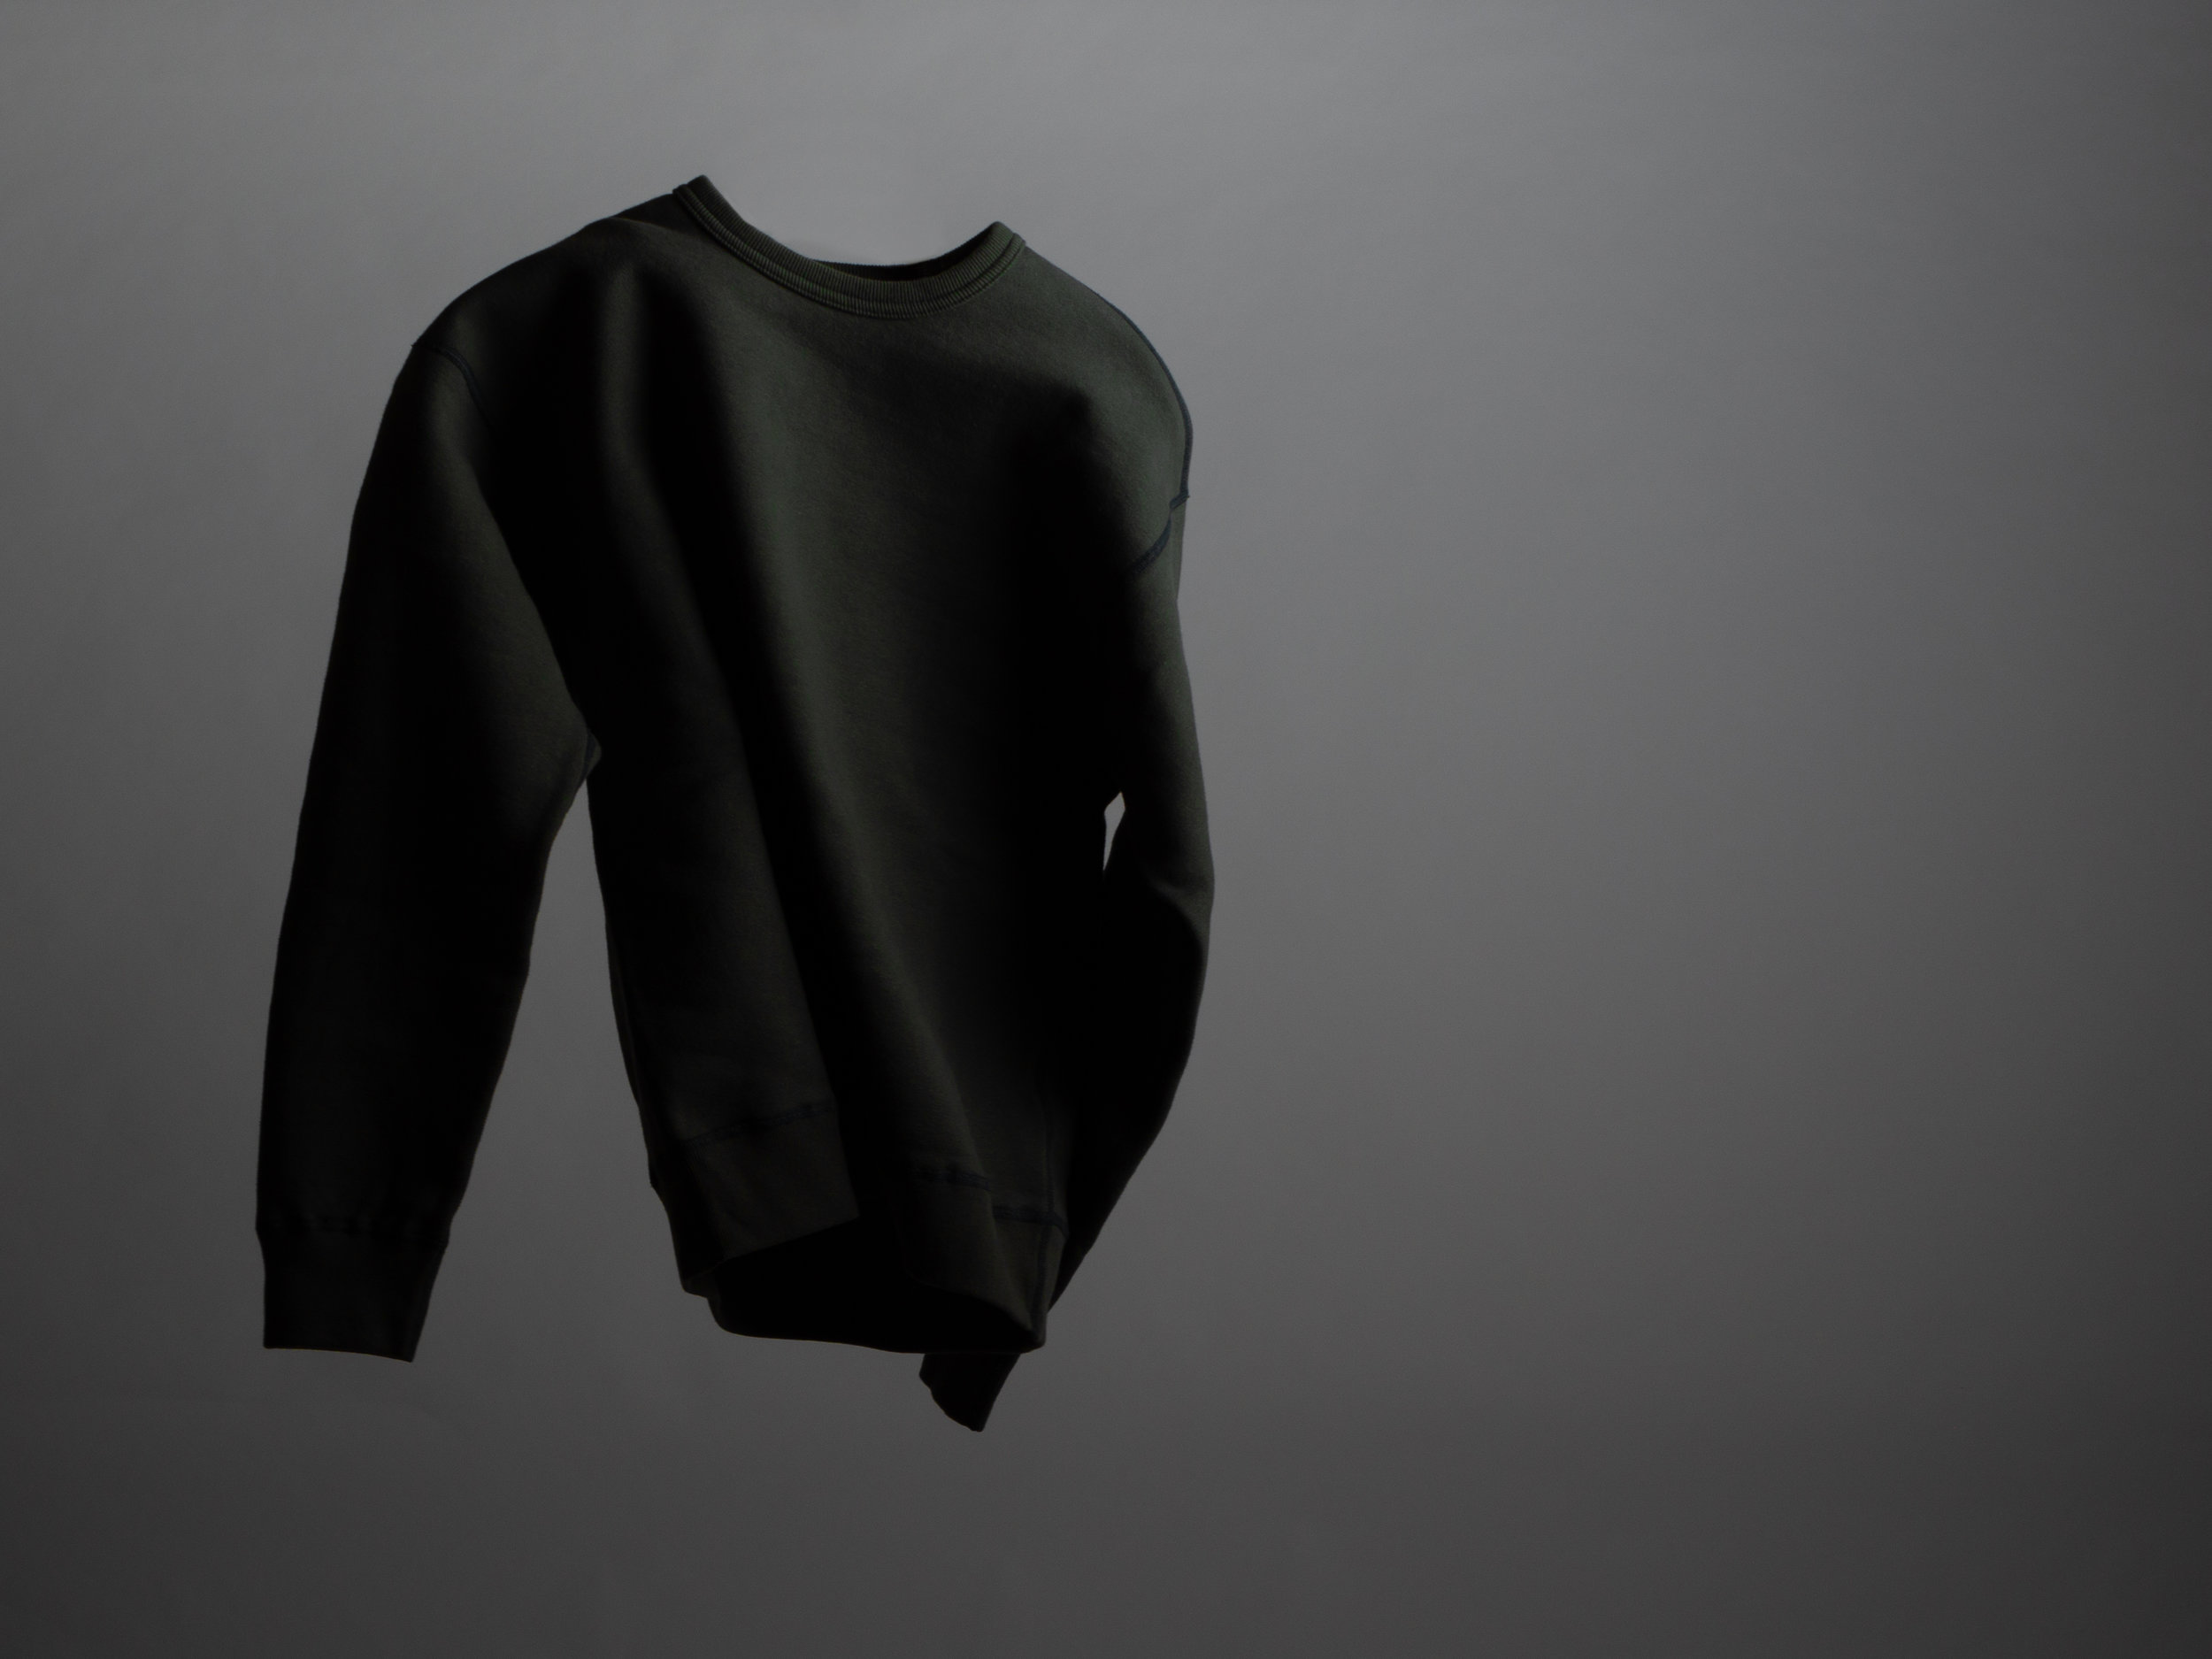 Wings + Horns Relaxed Fleece - These Relaxed Fleece Sweaters feature a comfortable, oversized fit with wide drop shoulders. Made with an extremely warm Japanese fleeced cotton, the sweaters are finished with wings+horns' classic flatlock stitching throughout for the highest level of comfort. The Relaxed Fleece program is made in Canada.